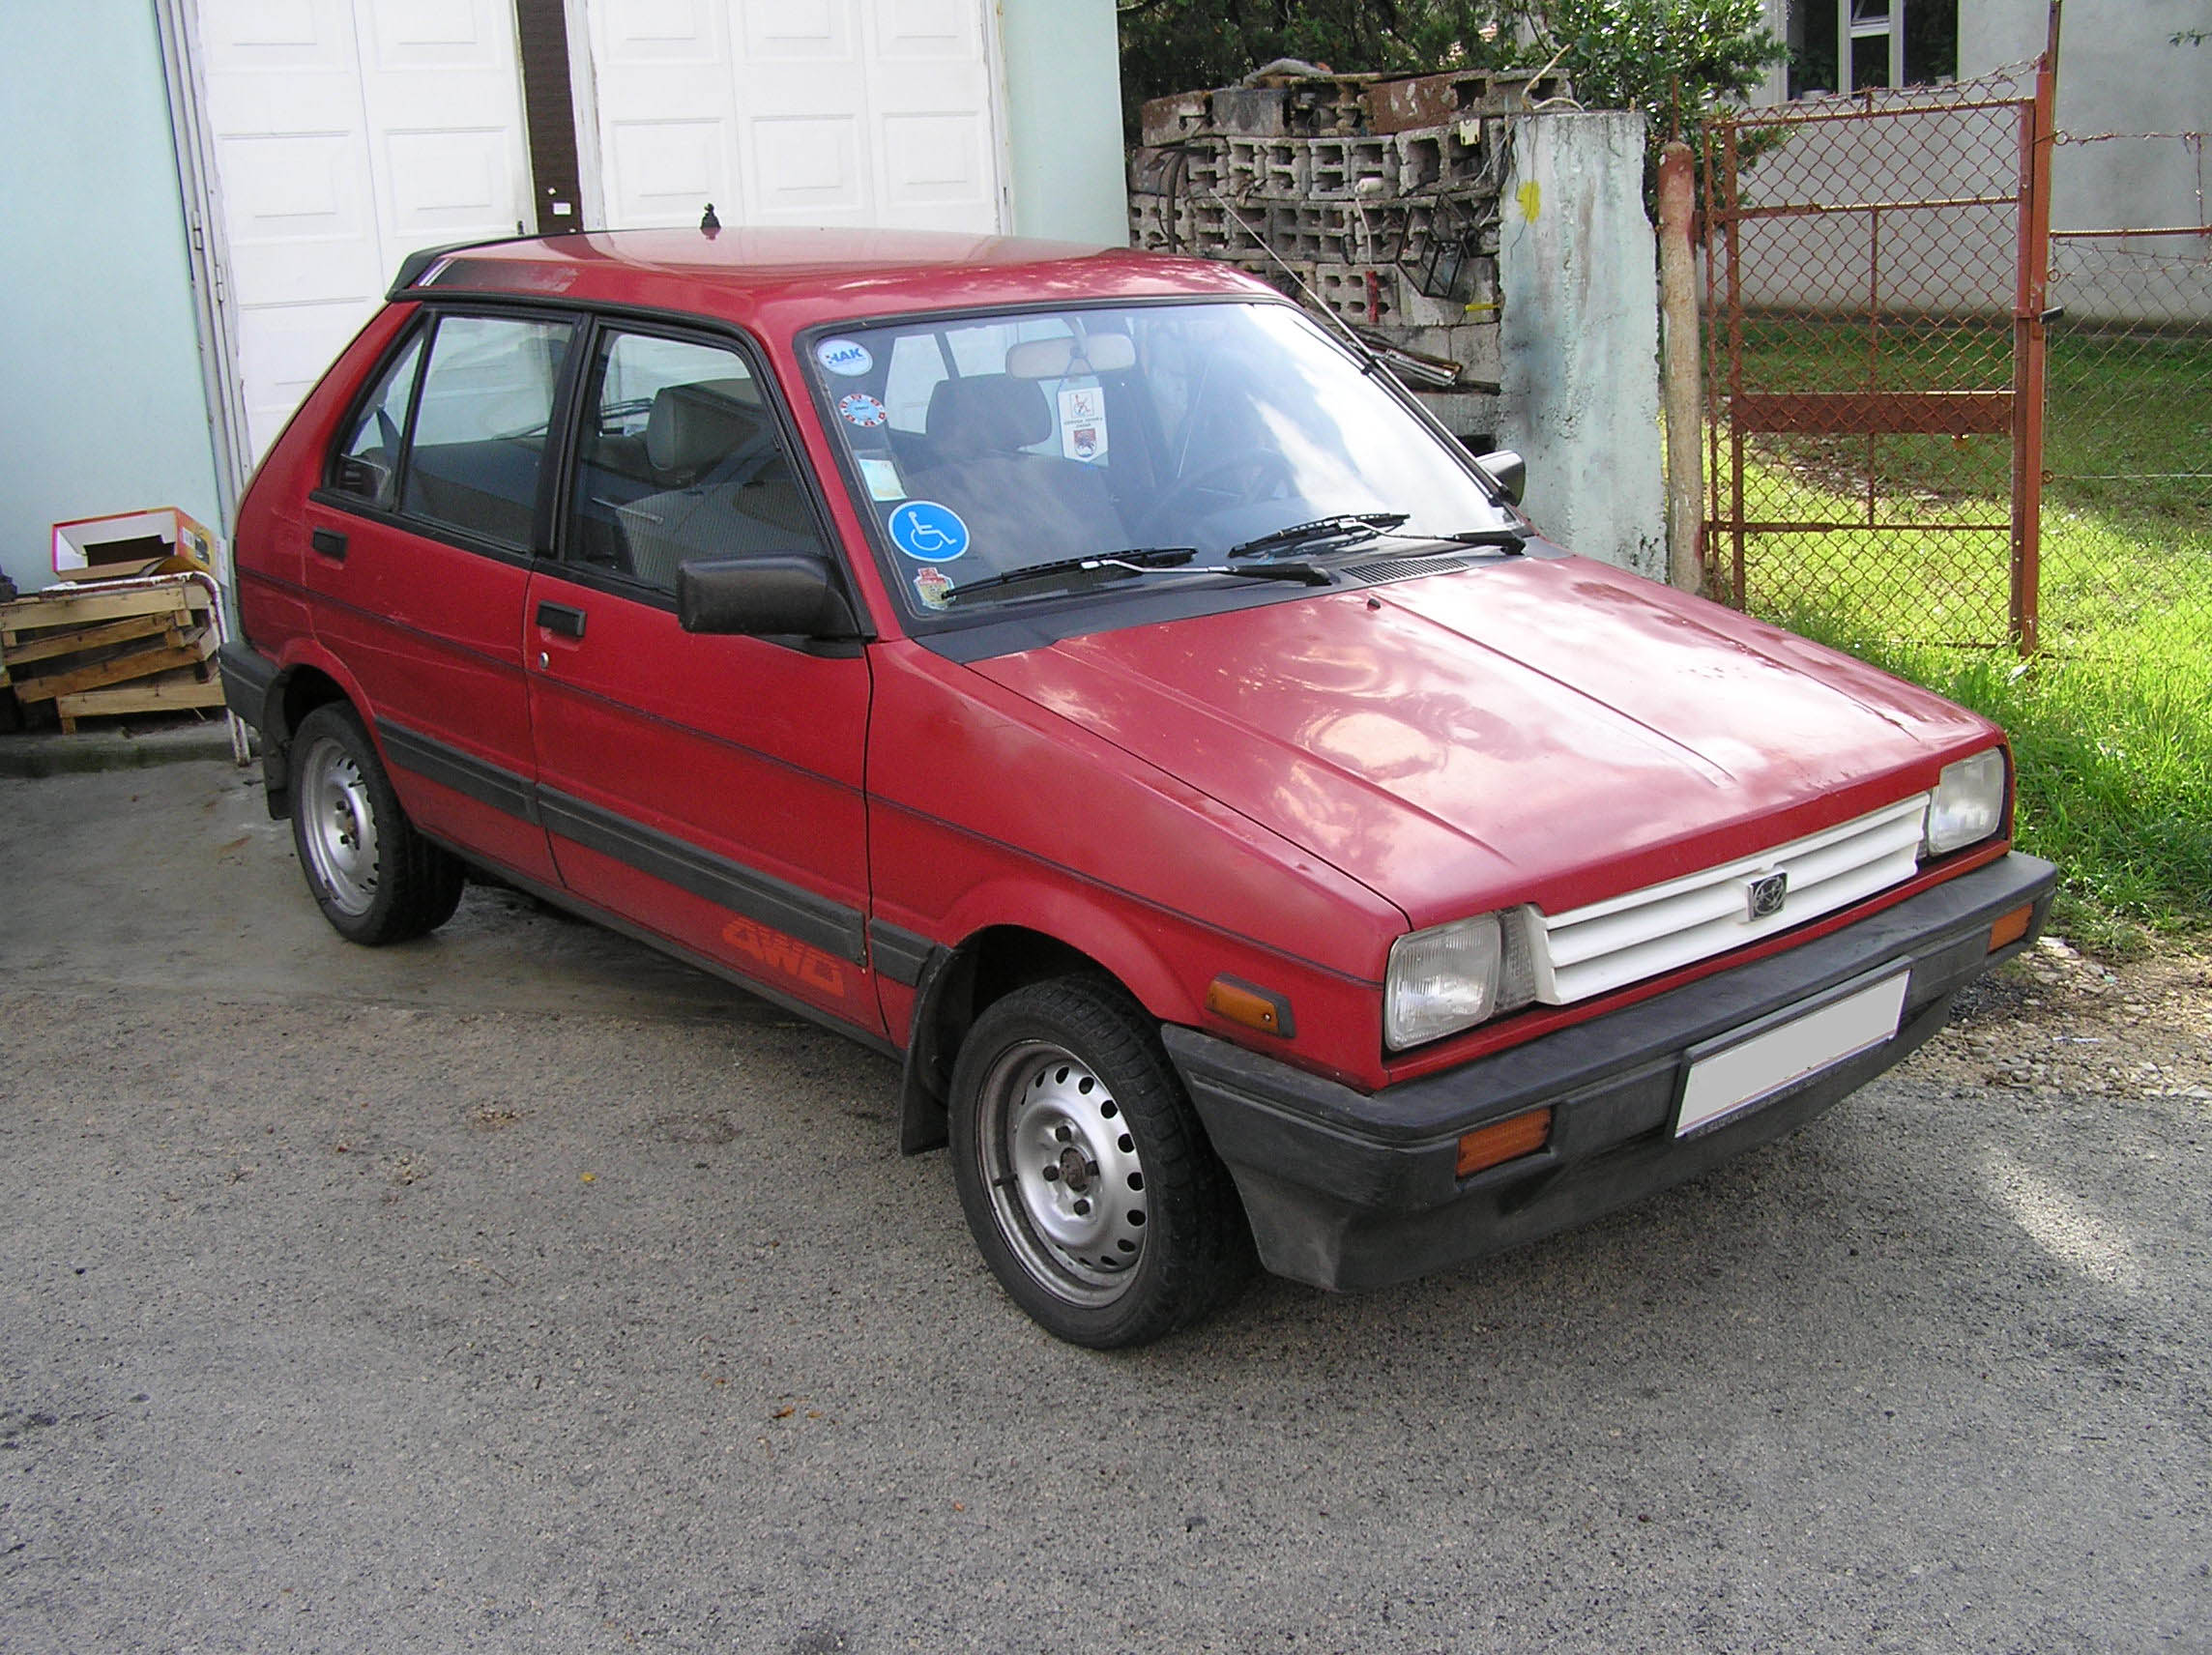 Subaru Justy - Wikipedia